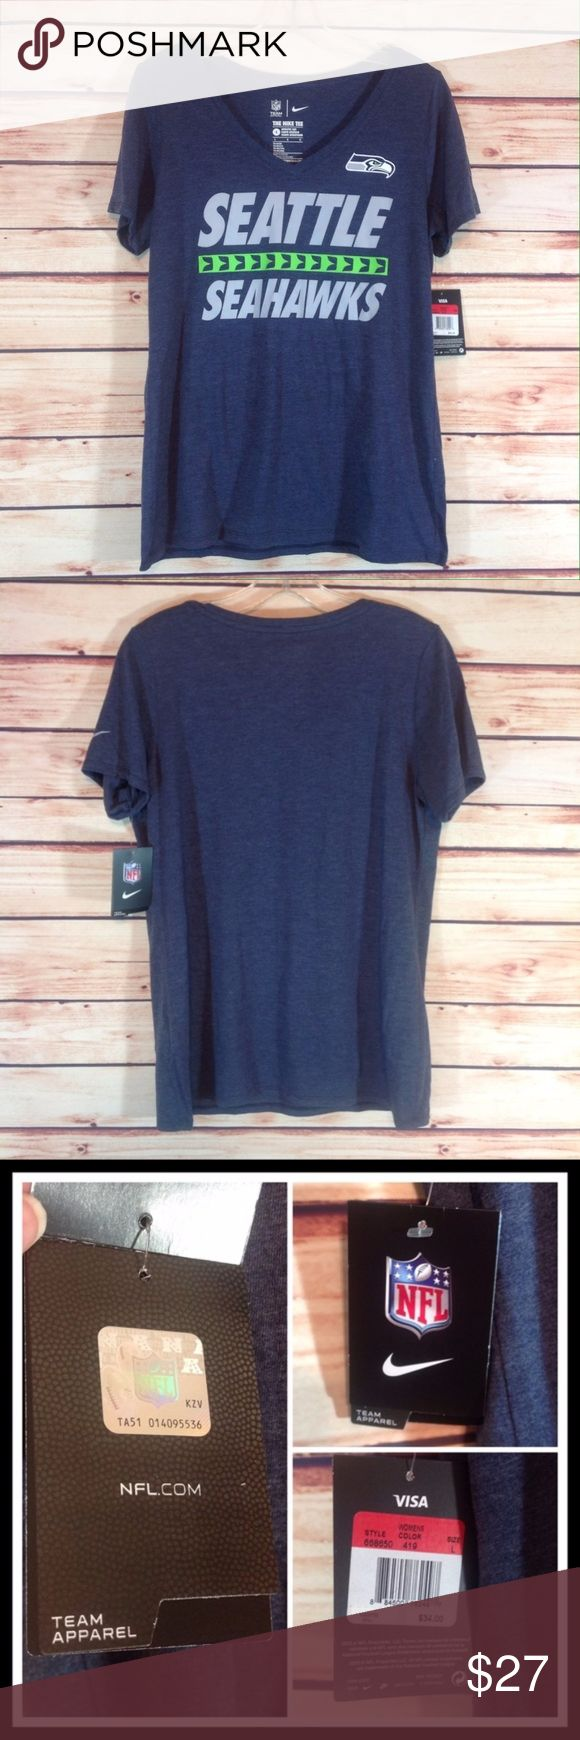 "Nike NFL Official Seattle Seahawks Tee Large NWT Brand new with tags! NWT. Nike NFL official Seattle Seahawks team T-shirt. Ladies Large. Bust 18"" across flat. 27"" long. grayish-blue with lt. gray and green team color lettering.   🔹Please ask all your questions before you purchase! 🔹Sorry, no trades or holds 🔹Bundle for your best prices! Nike Tops Tees - Short Sleeve"